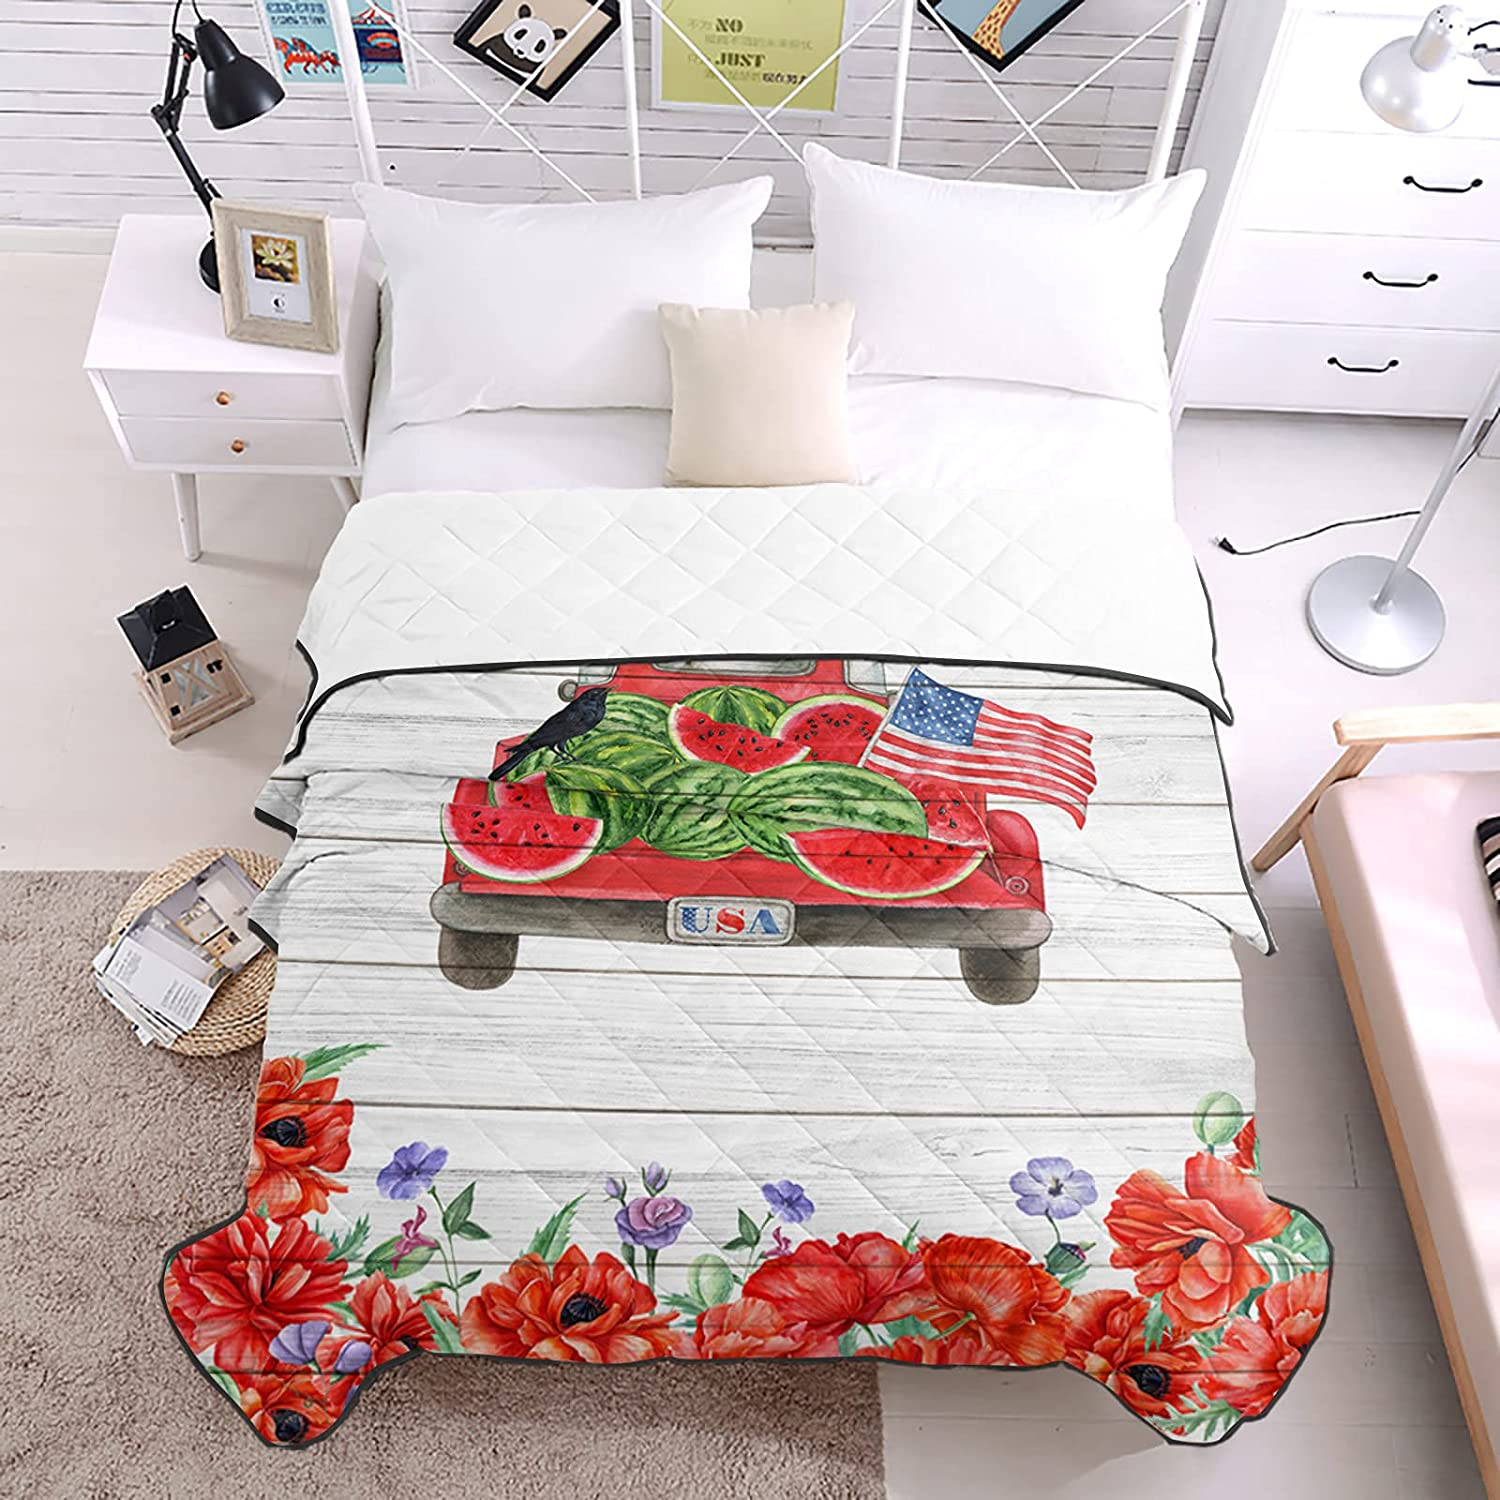 DecorLovee Bedding Duvets Red Flower Shipping included Waterm Pickup Truck Summer Don't miss the campaign